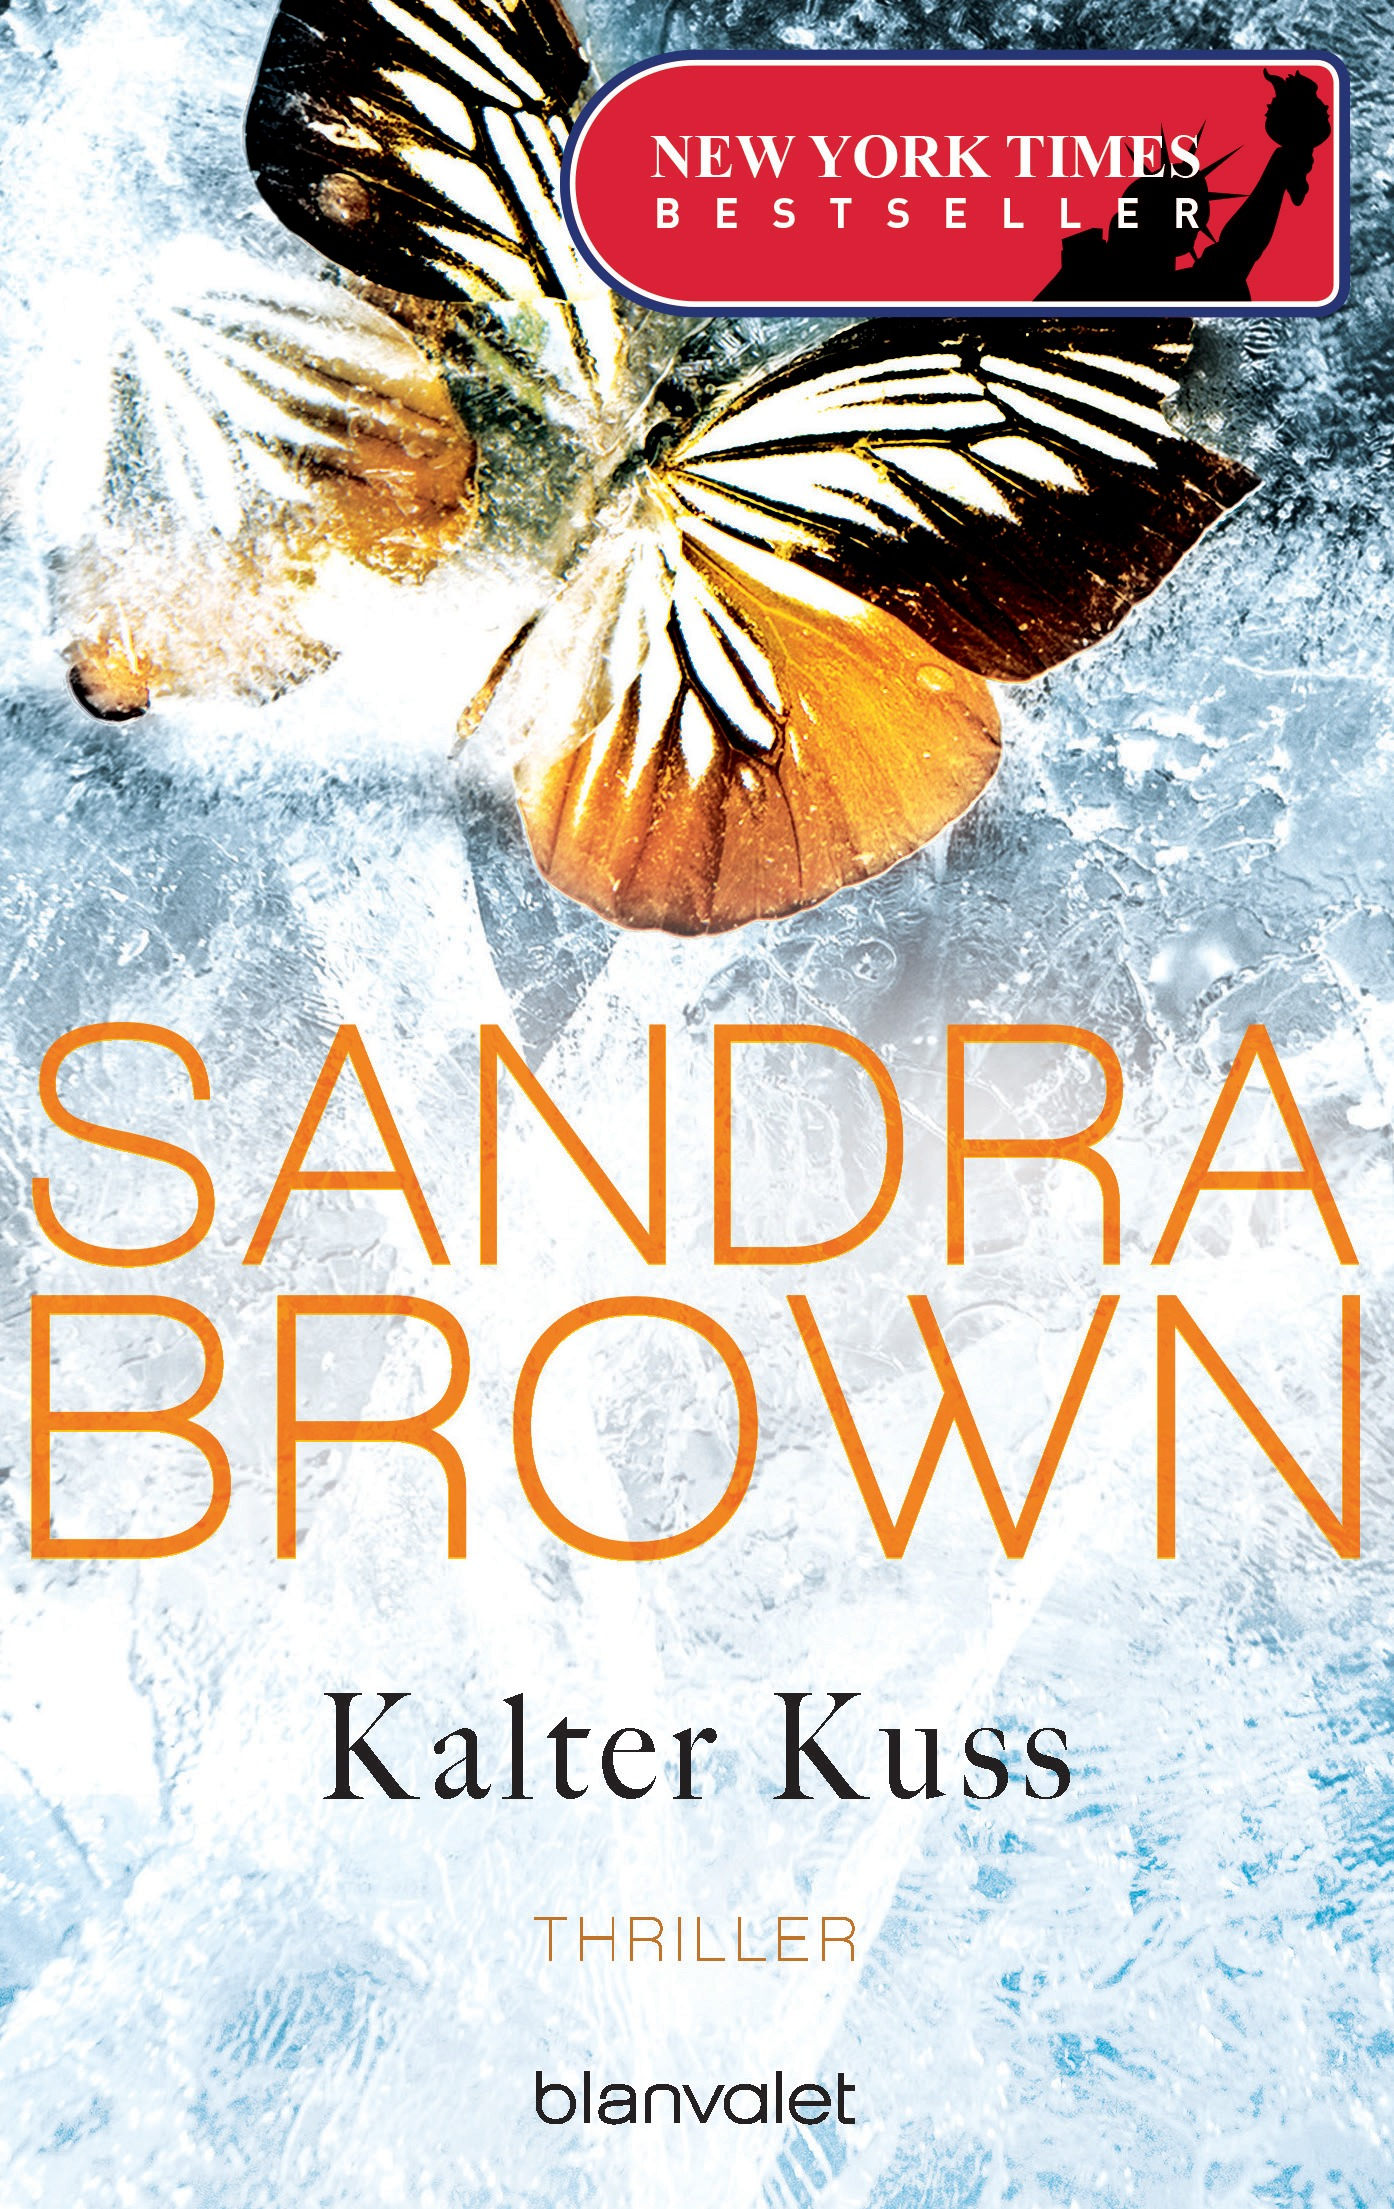 Kalter Kuss - Sandra Brown